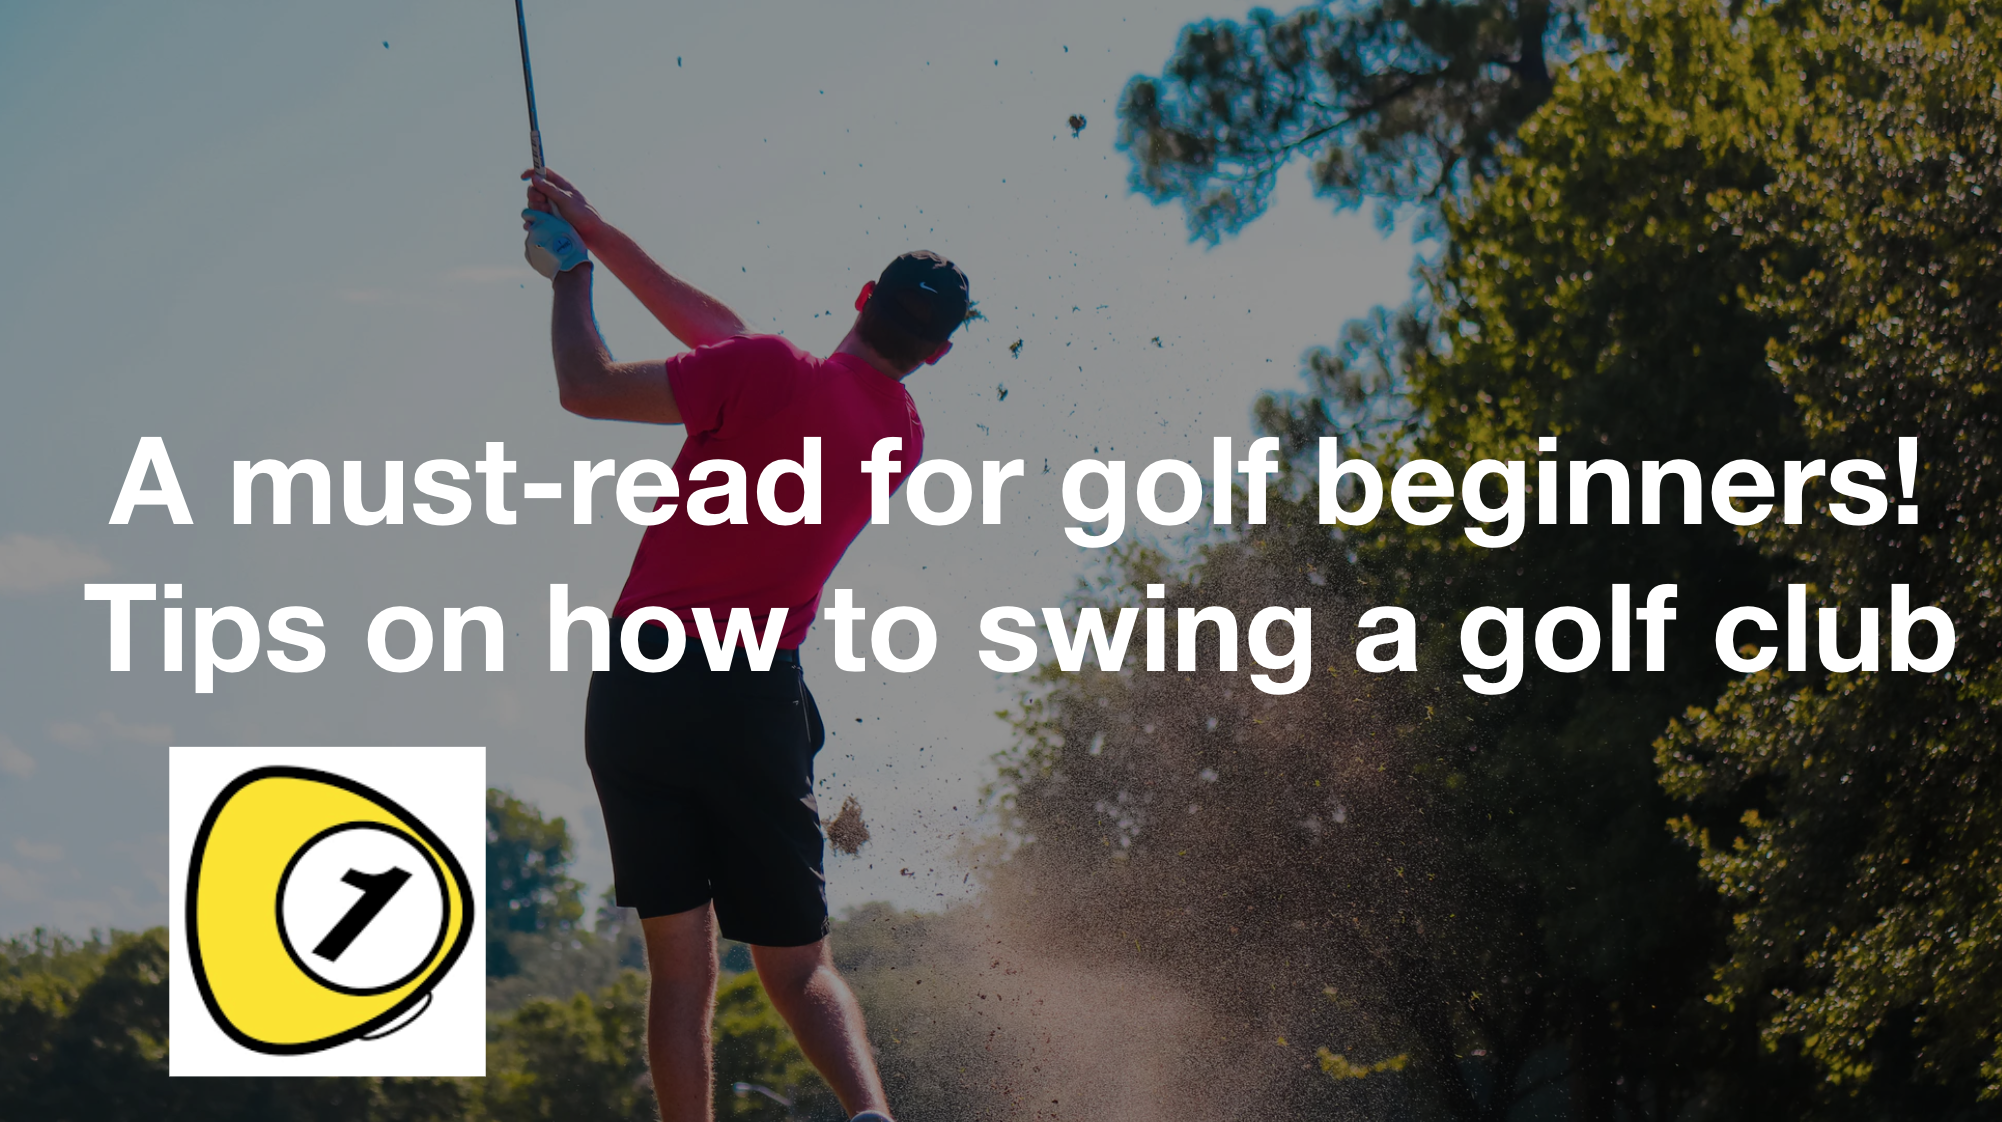 golfScoreCounterDotcom_A must-read for golf beginners!Tips on how to swing a golf club